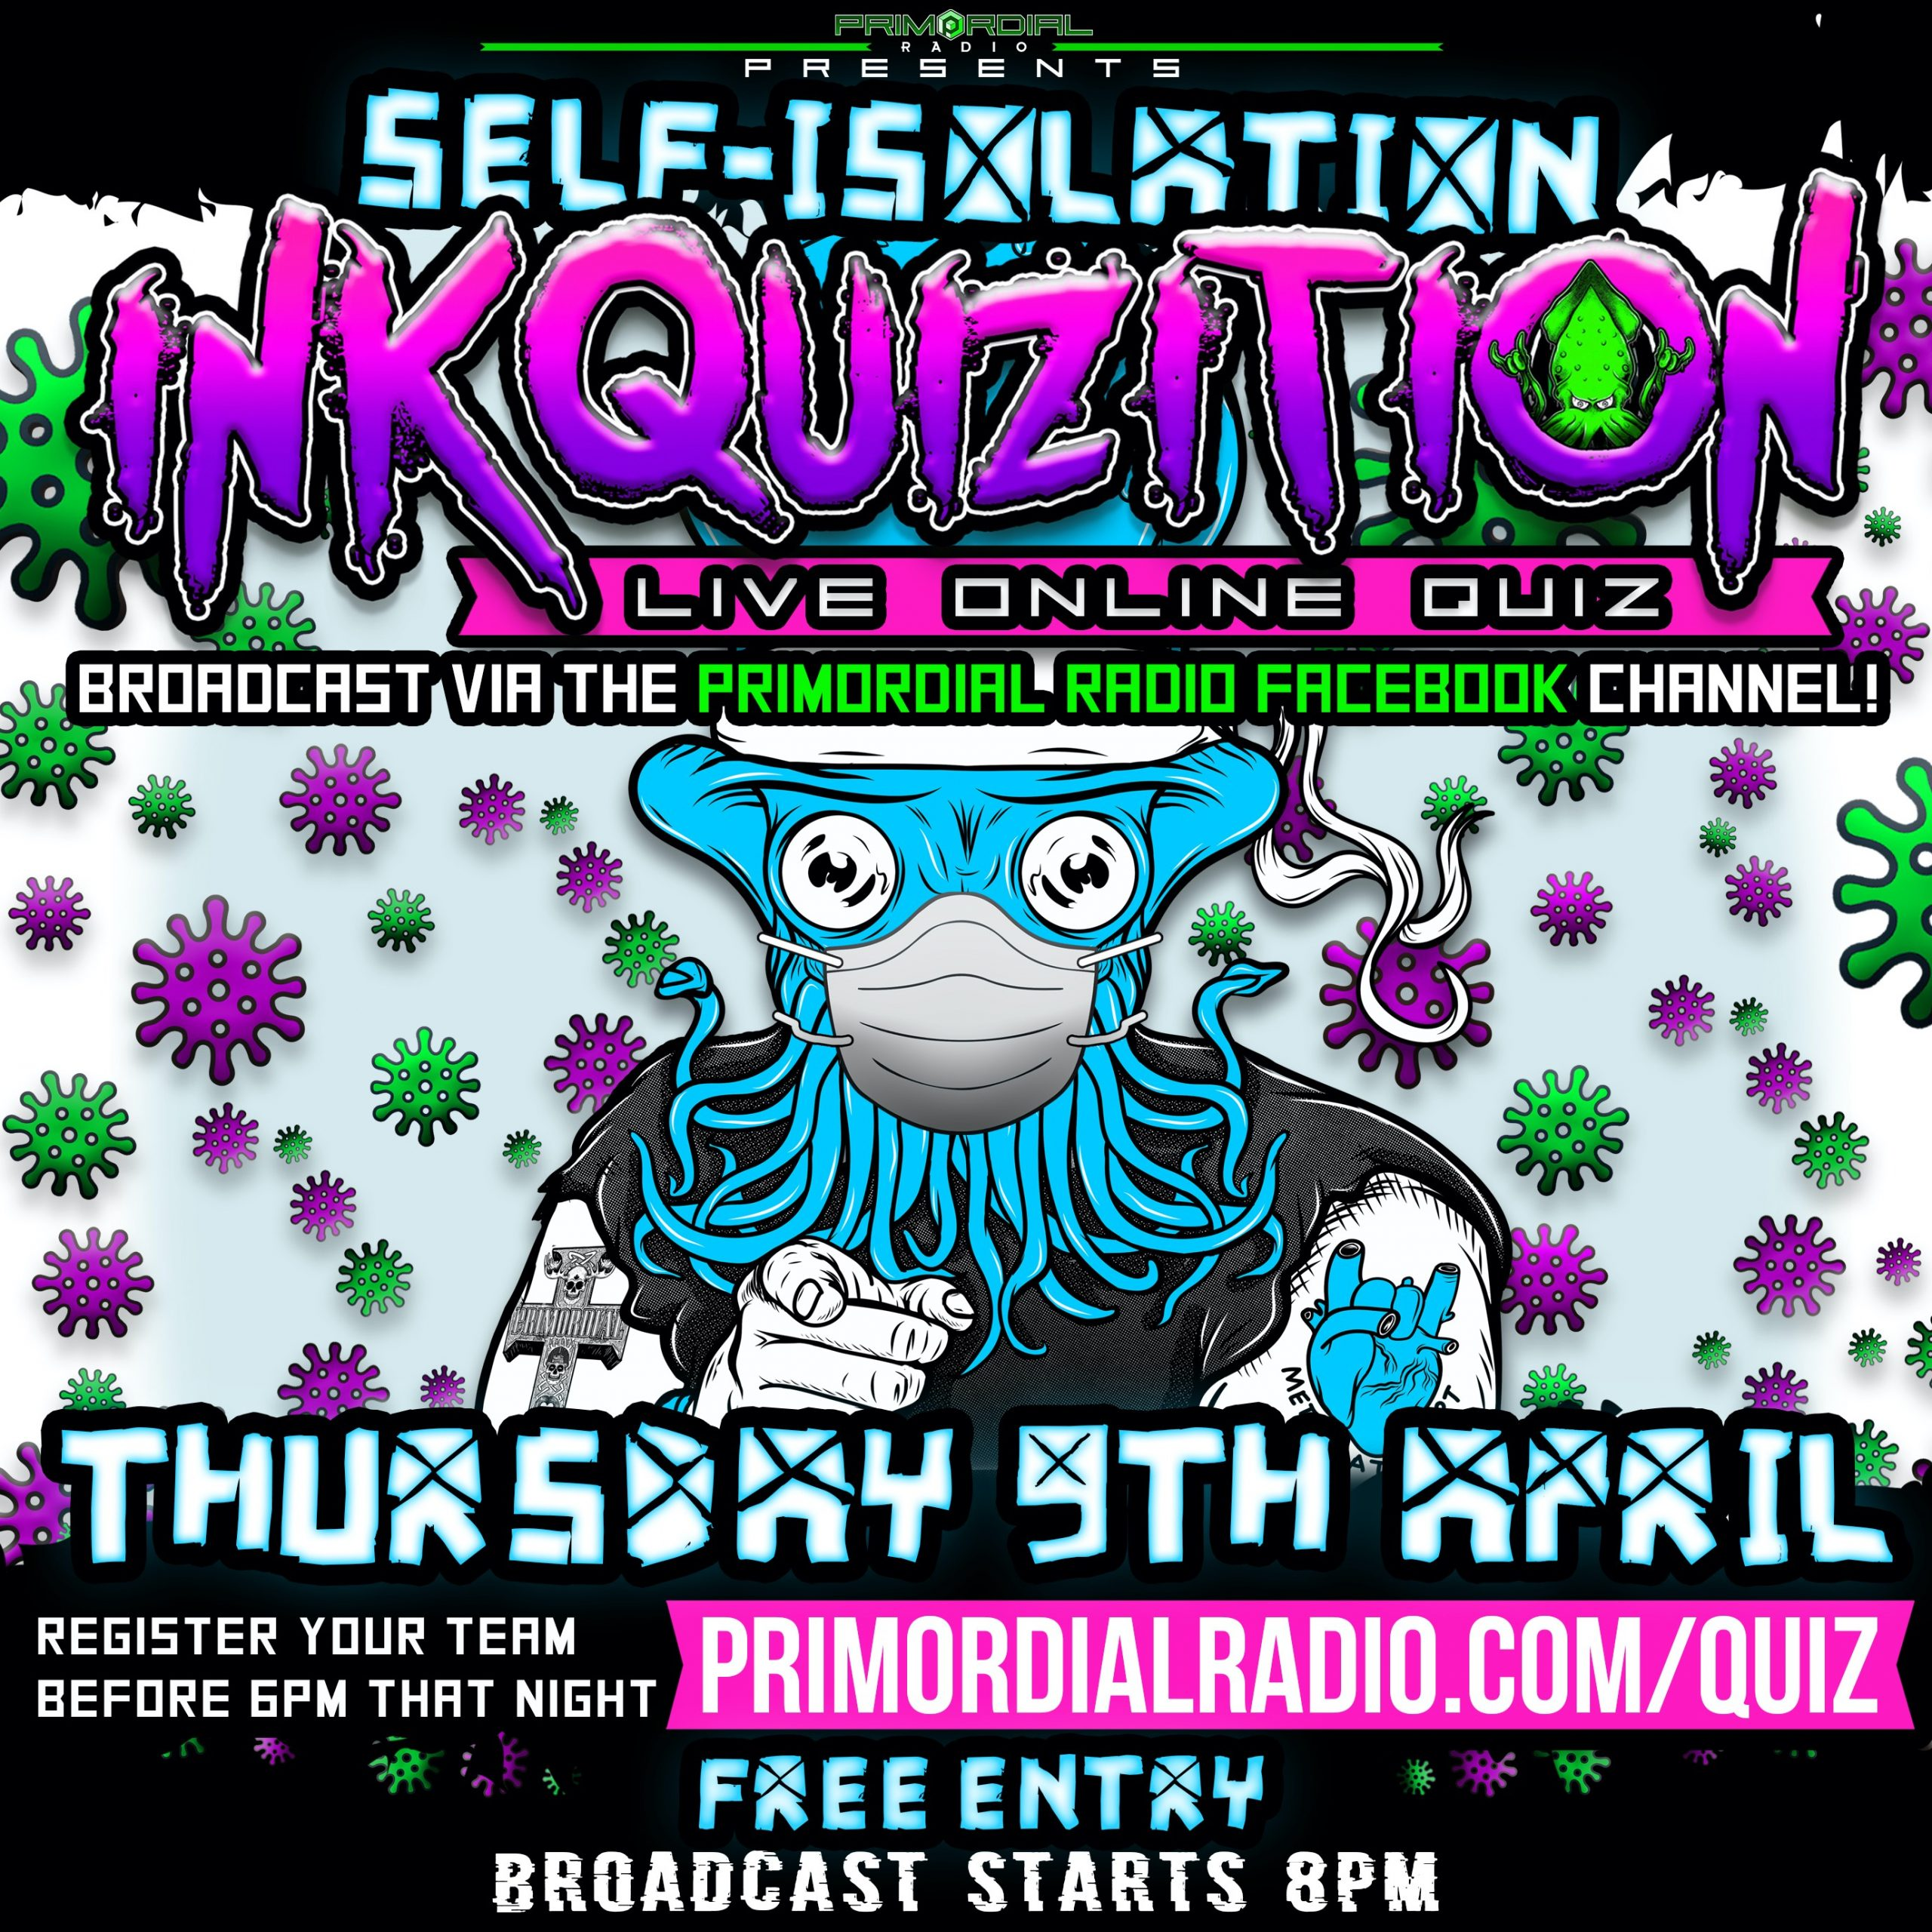 Inkquizition quiz Flyer 2nd April